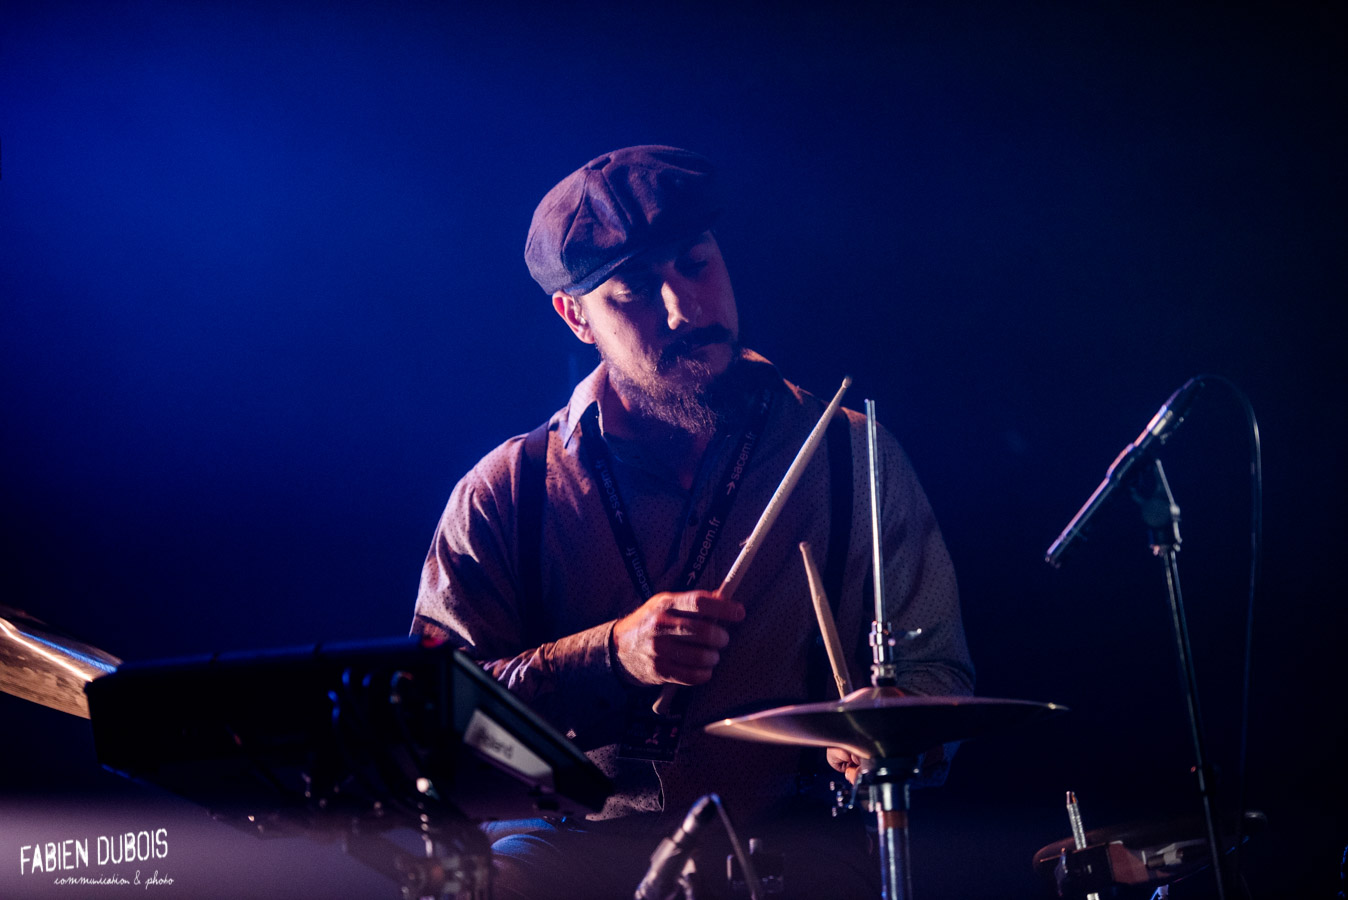 Photo Otis Stacks Cave à Musique Cavazik Mâcon 2018